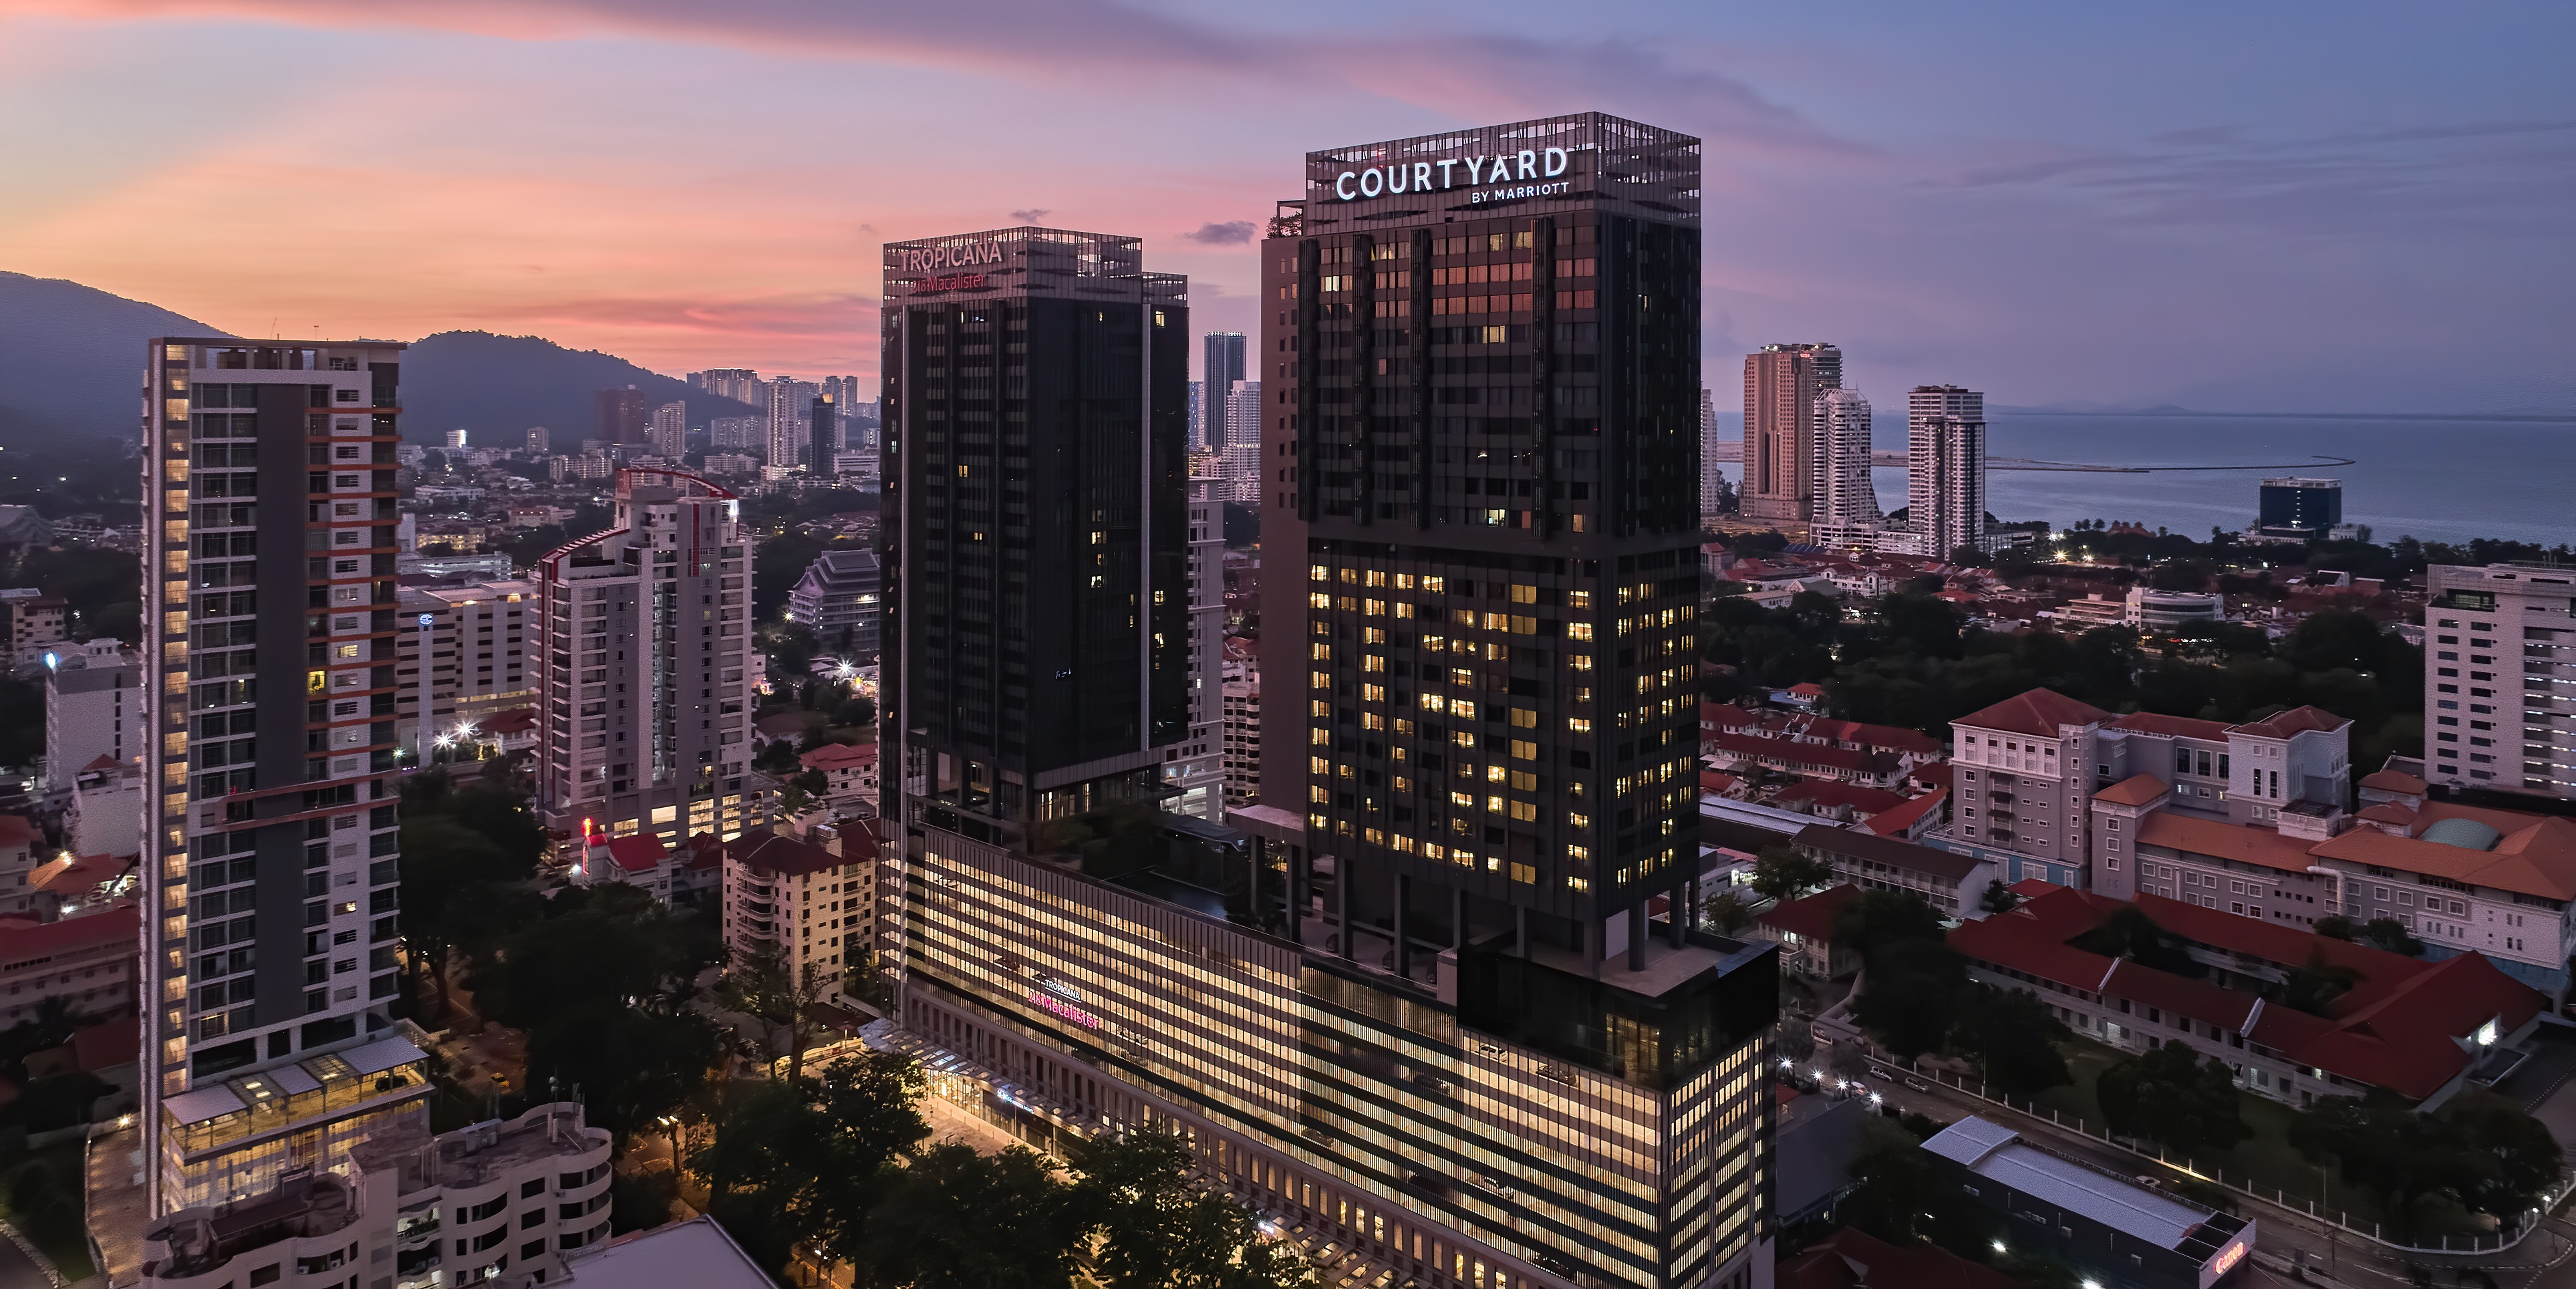 Marriott International is expanding in Malaysia; to open two new hotels this year